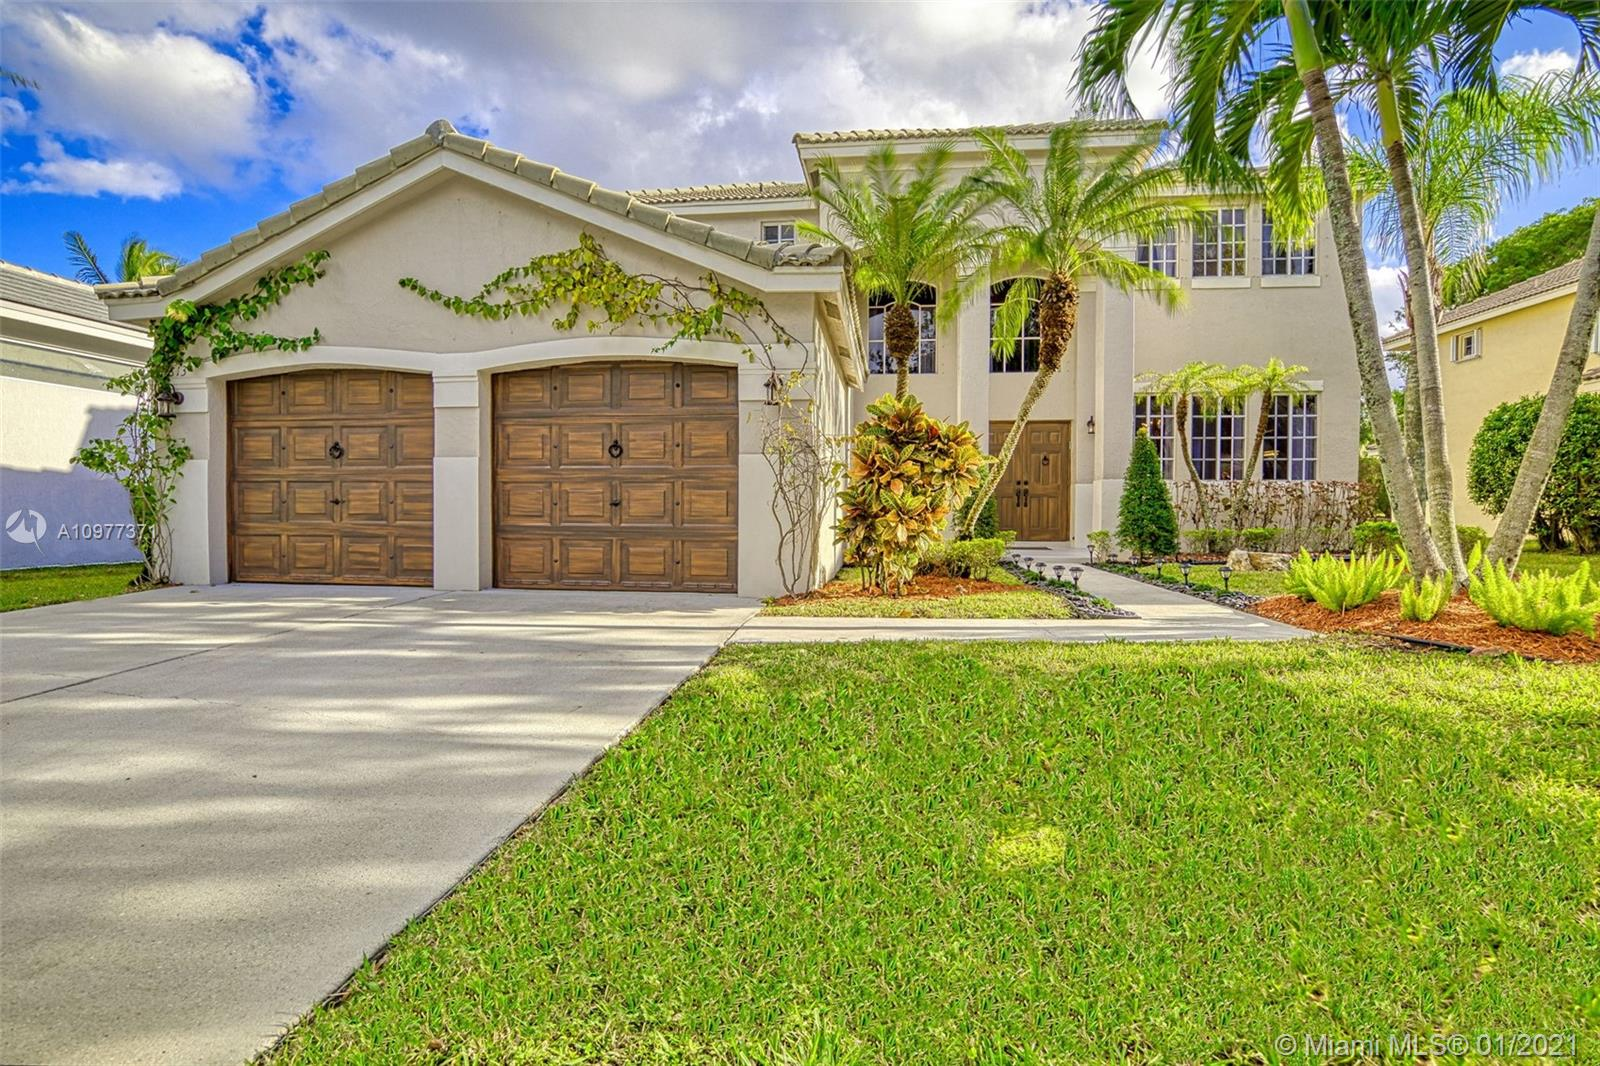 Weston - 813 Crestview Cir, Weston, FL 33327